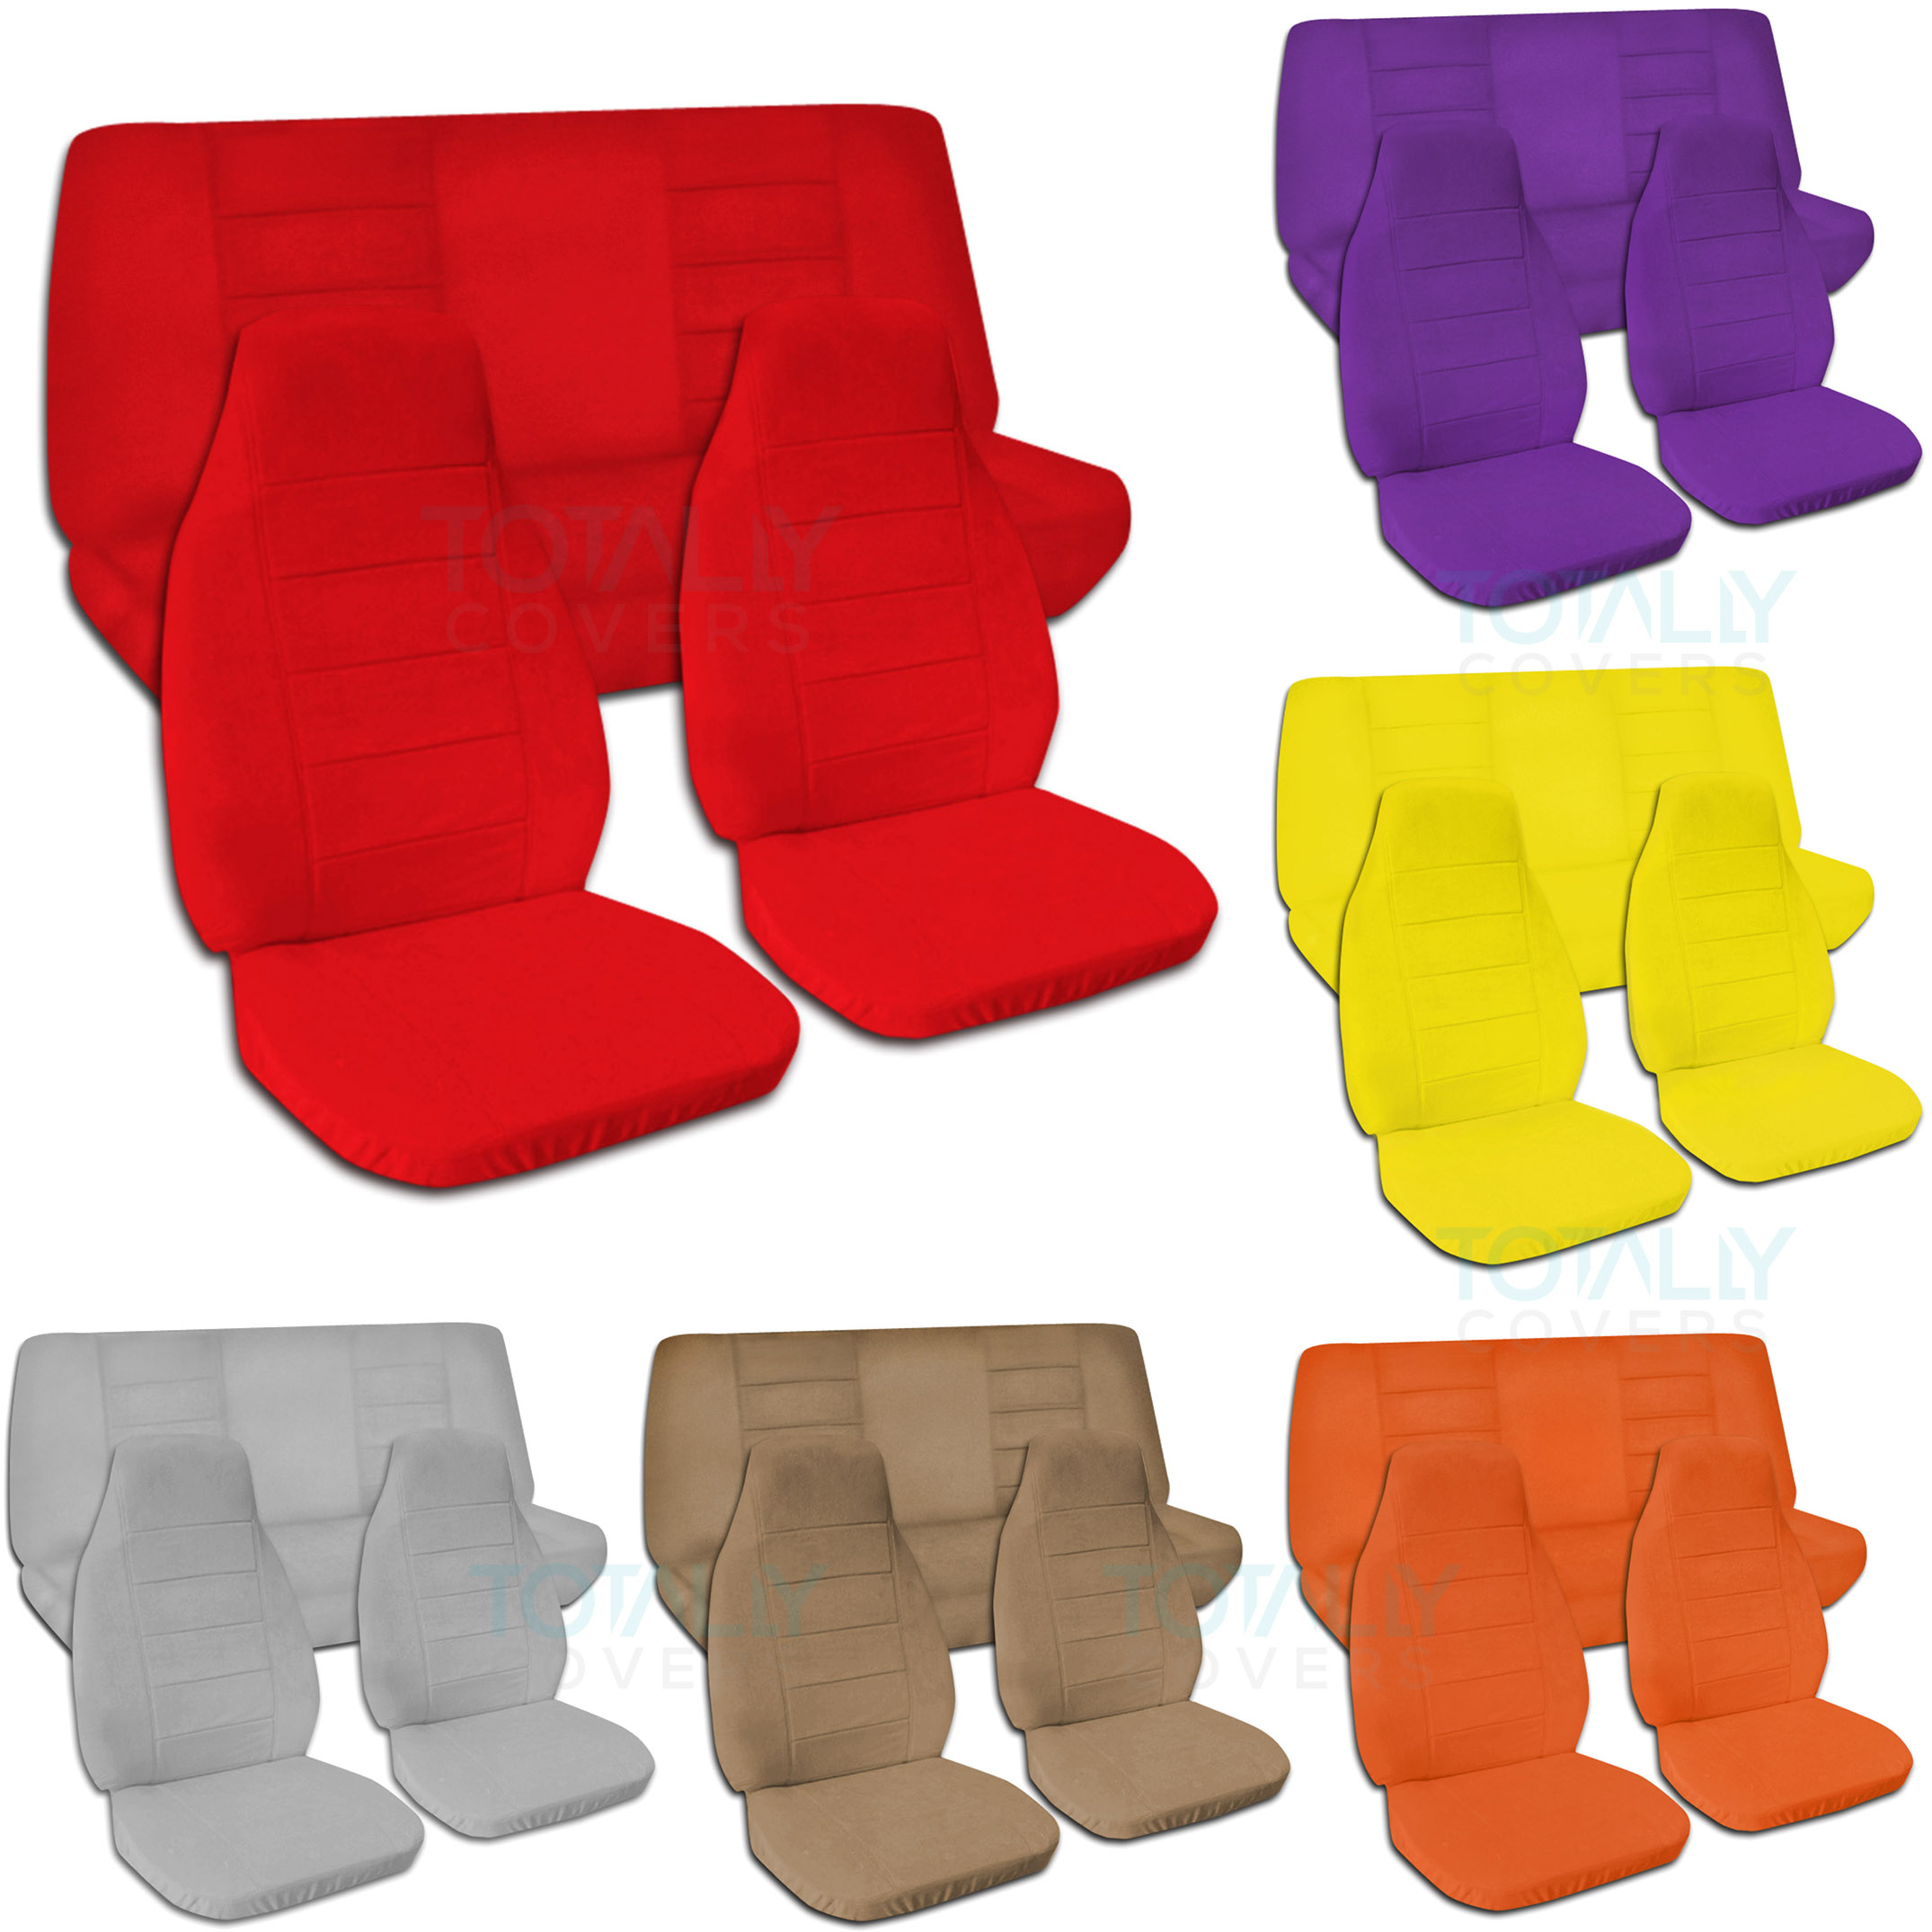 Pics For Gt Red Car Seat Covers